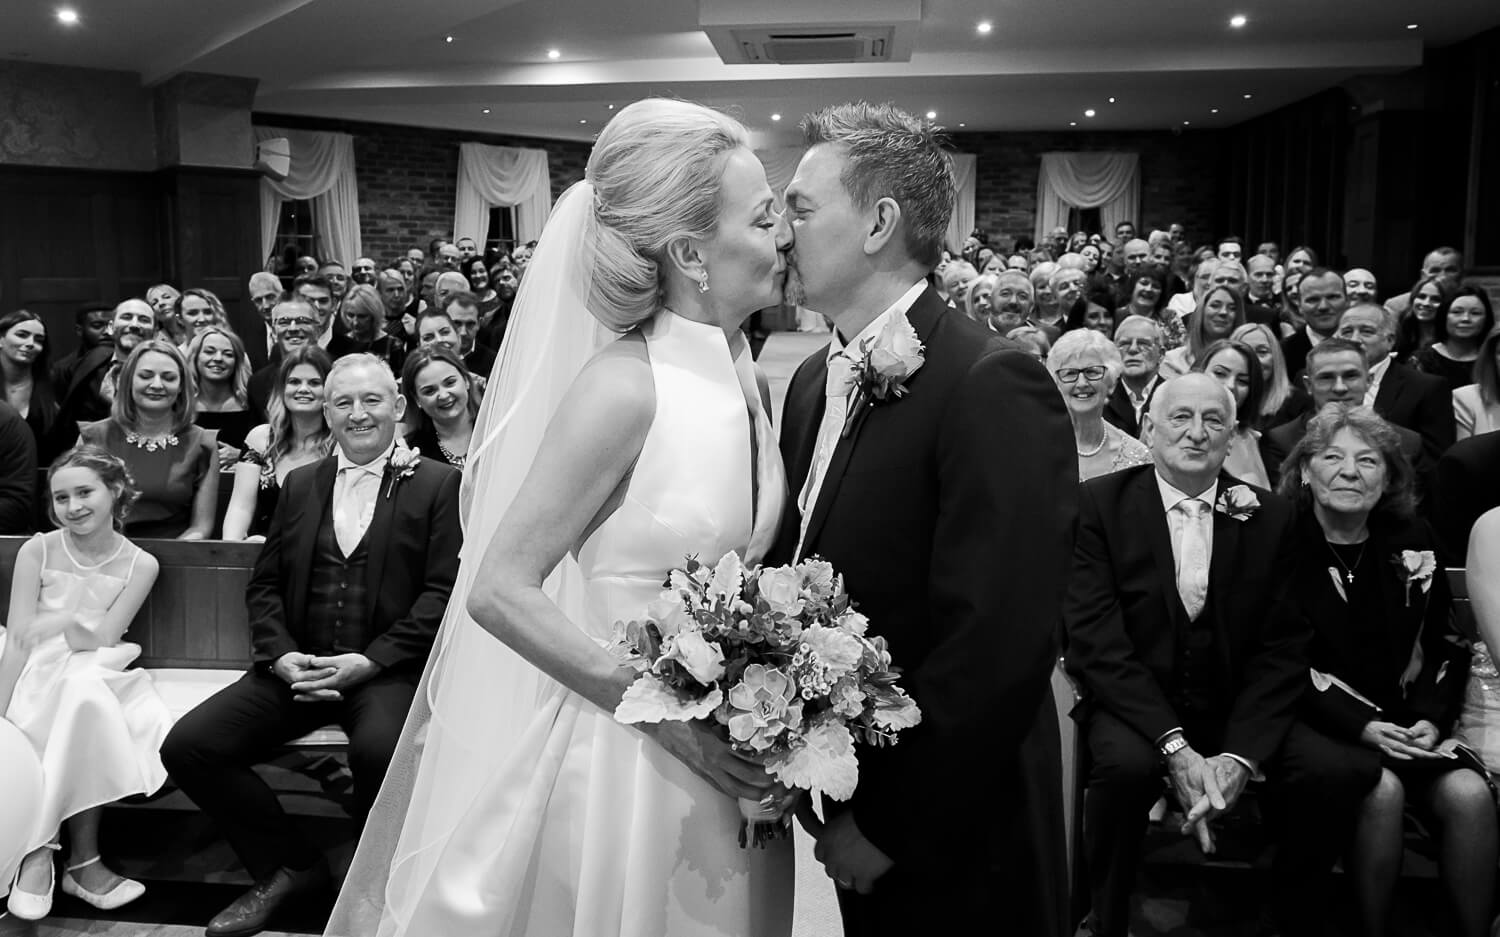 The Kiss at Wedding ceremony. Wedding Photos by Moore & Moore Photography, Hampshire